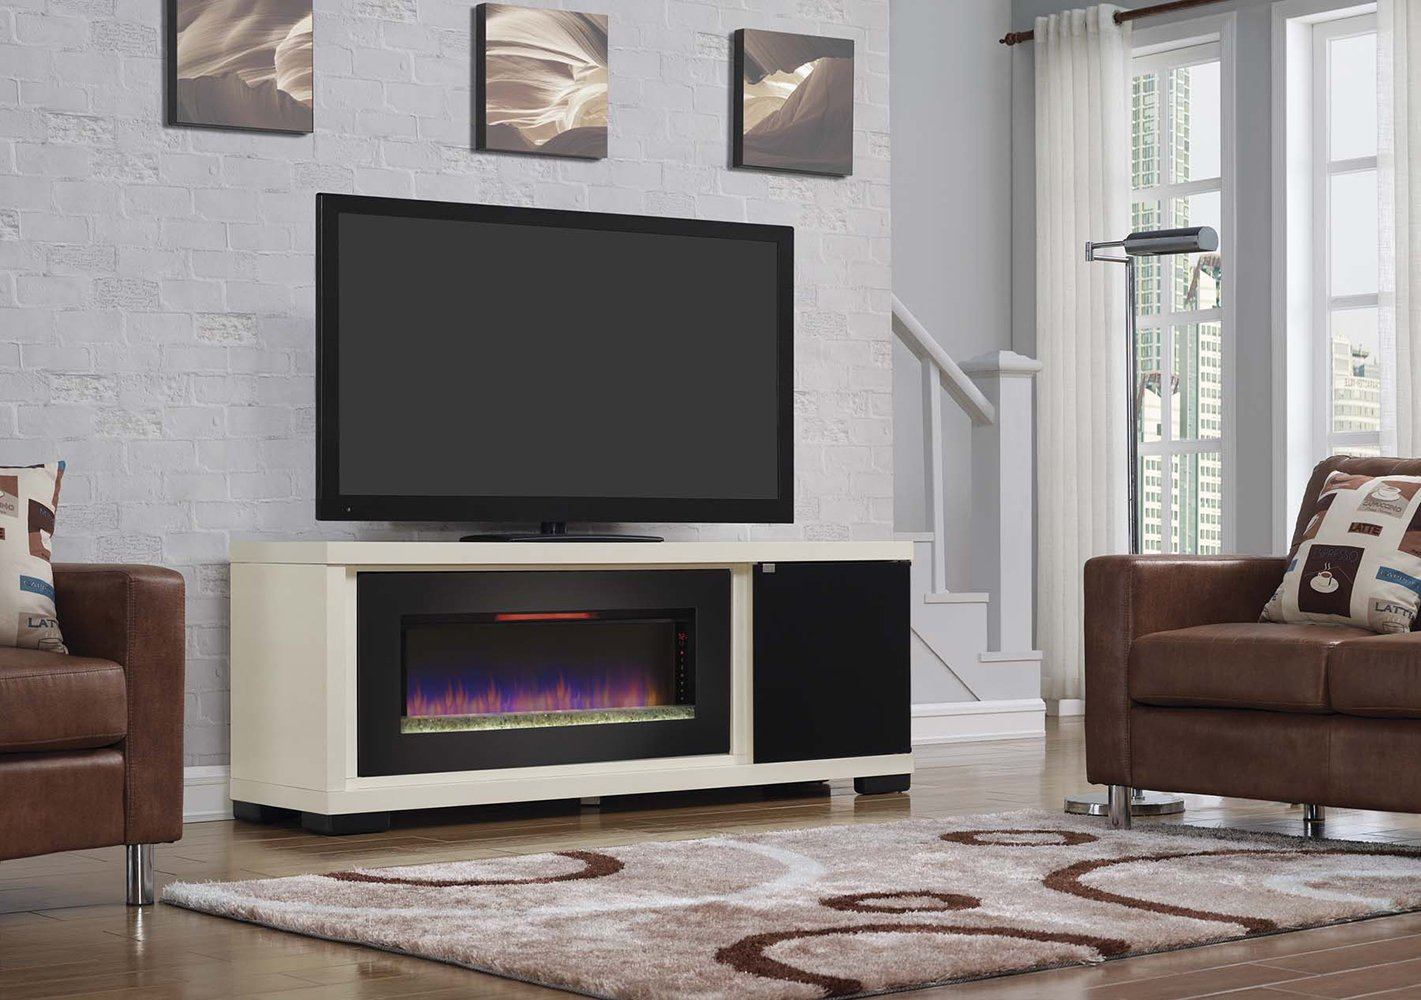 Amazon ClassicFlame 47IMM4931 T406 Brickell TV Stand For TVs Up To 80 Antique White Electric Fireplace Sold Separately Kitchen Dining